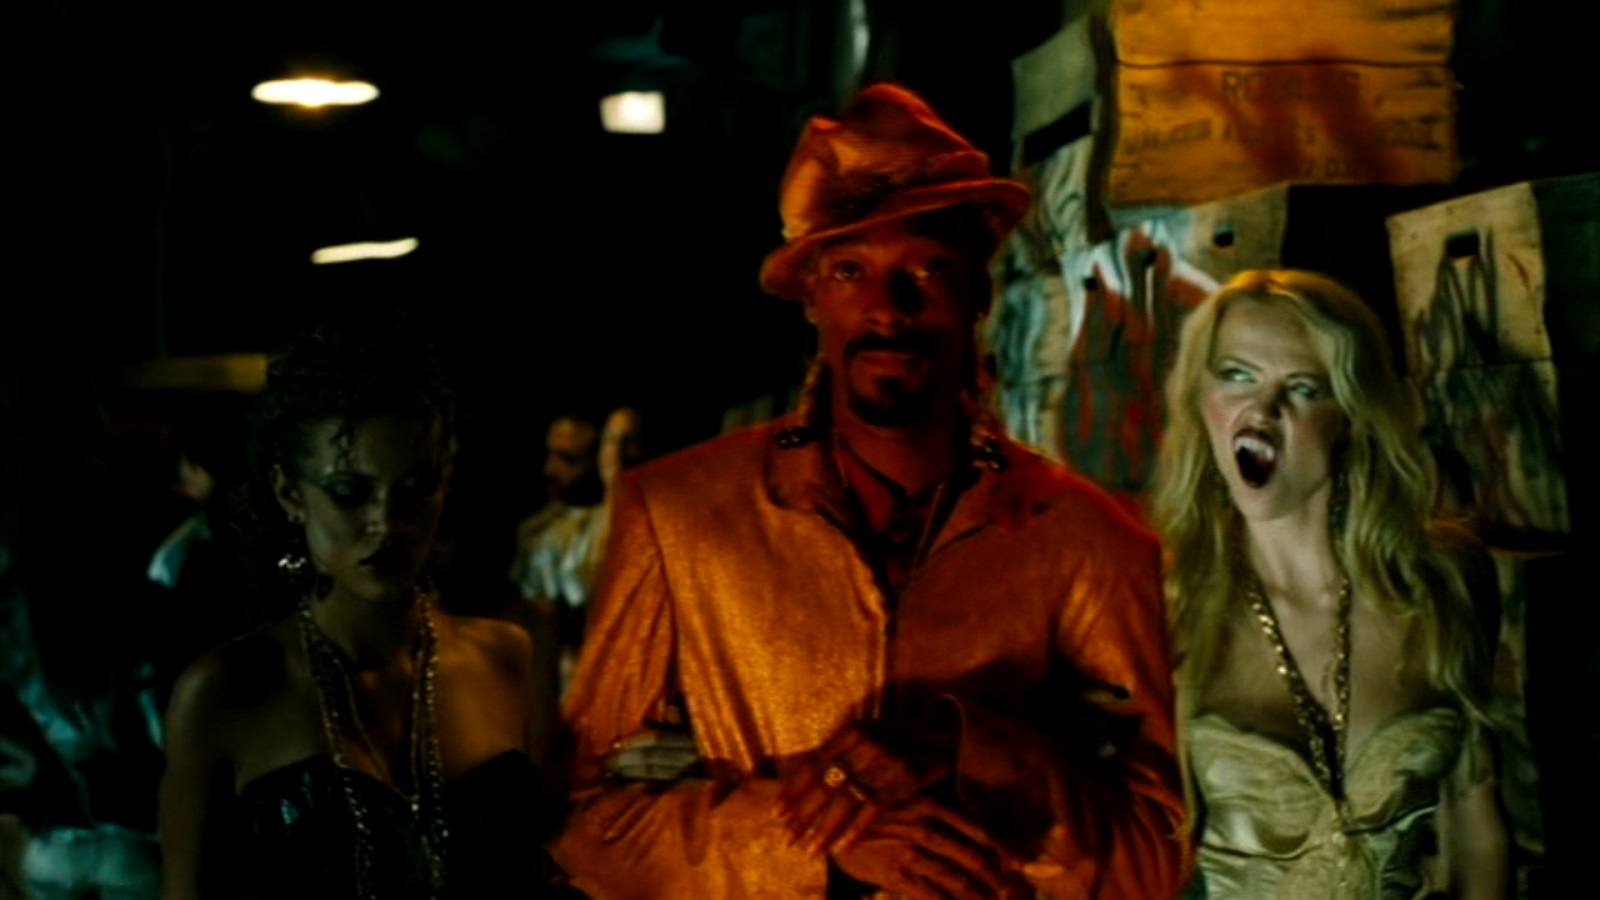 Snoop Dogg surrounded by his undead hoes in Snoop Dogg's Hood of Horror (2006)